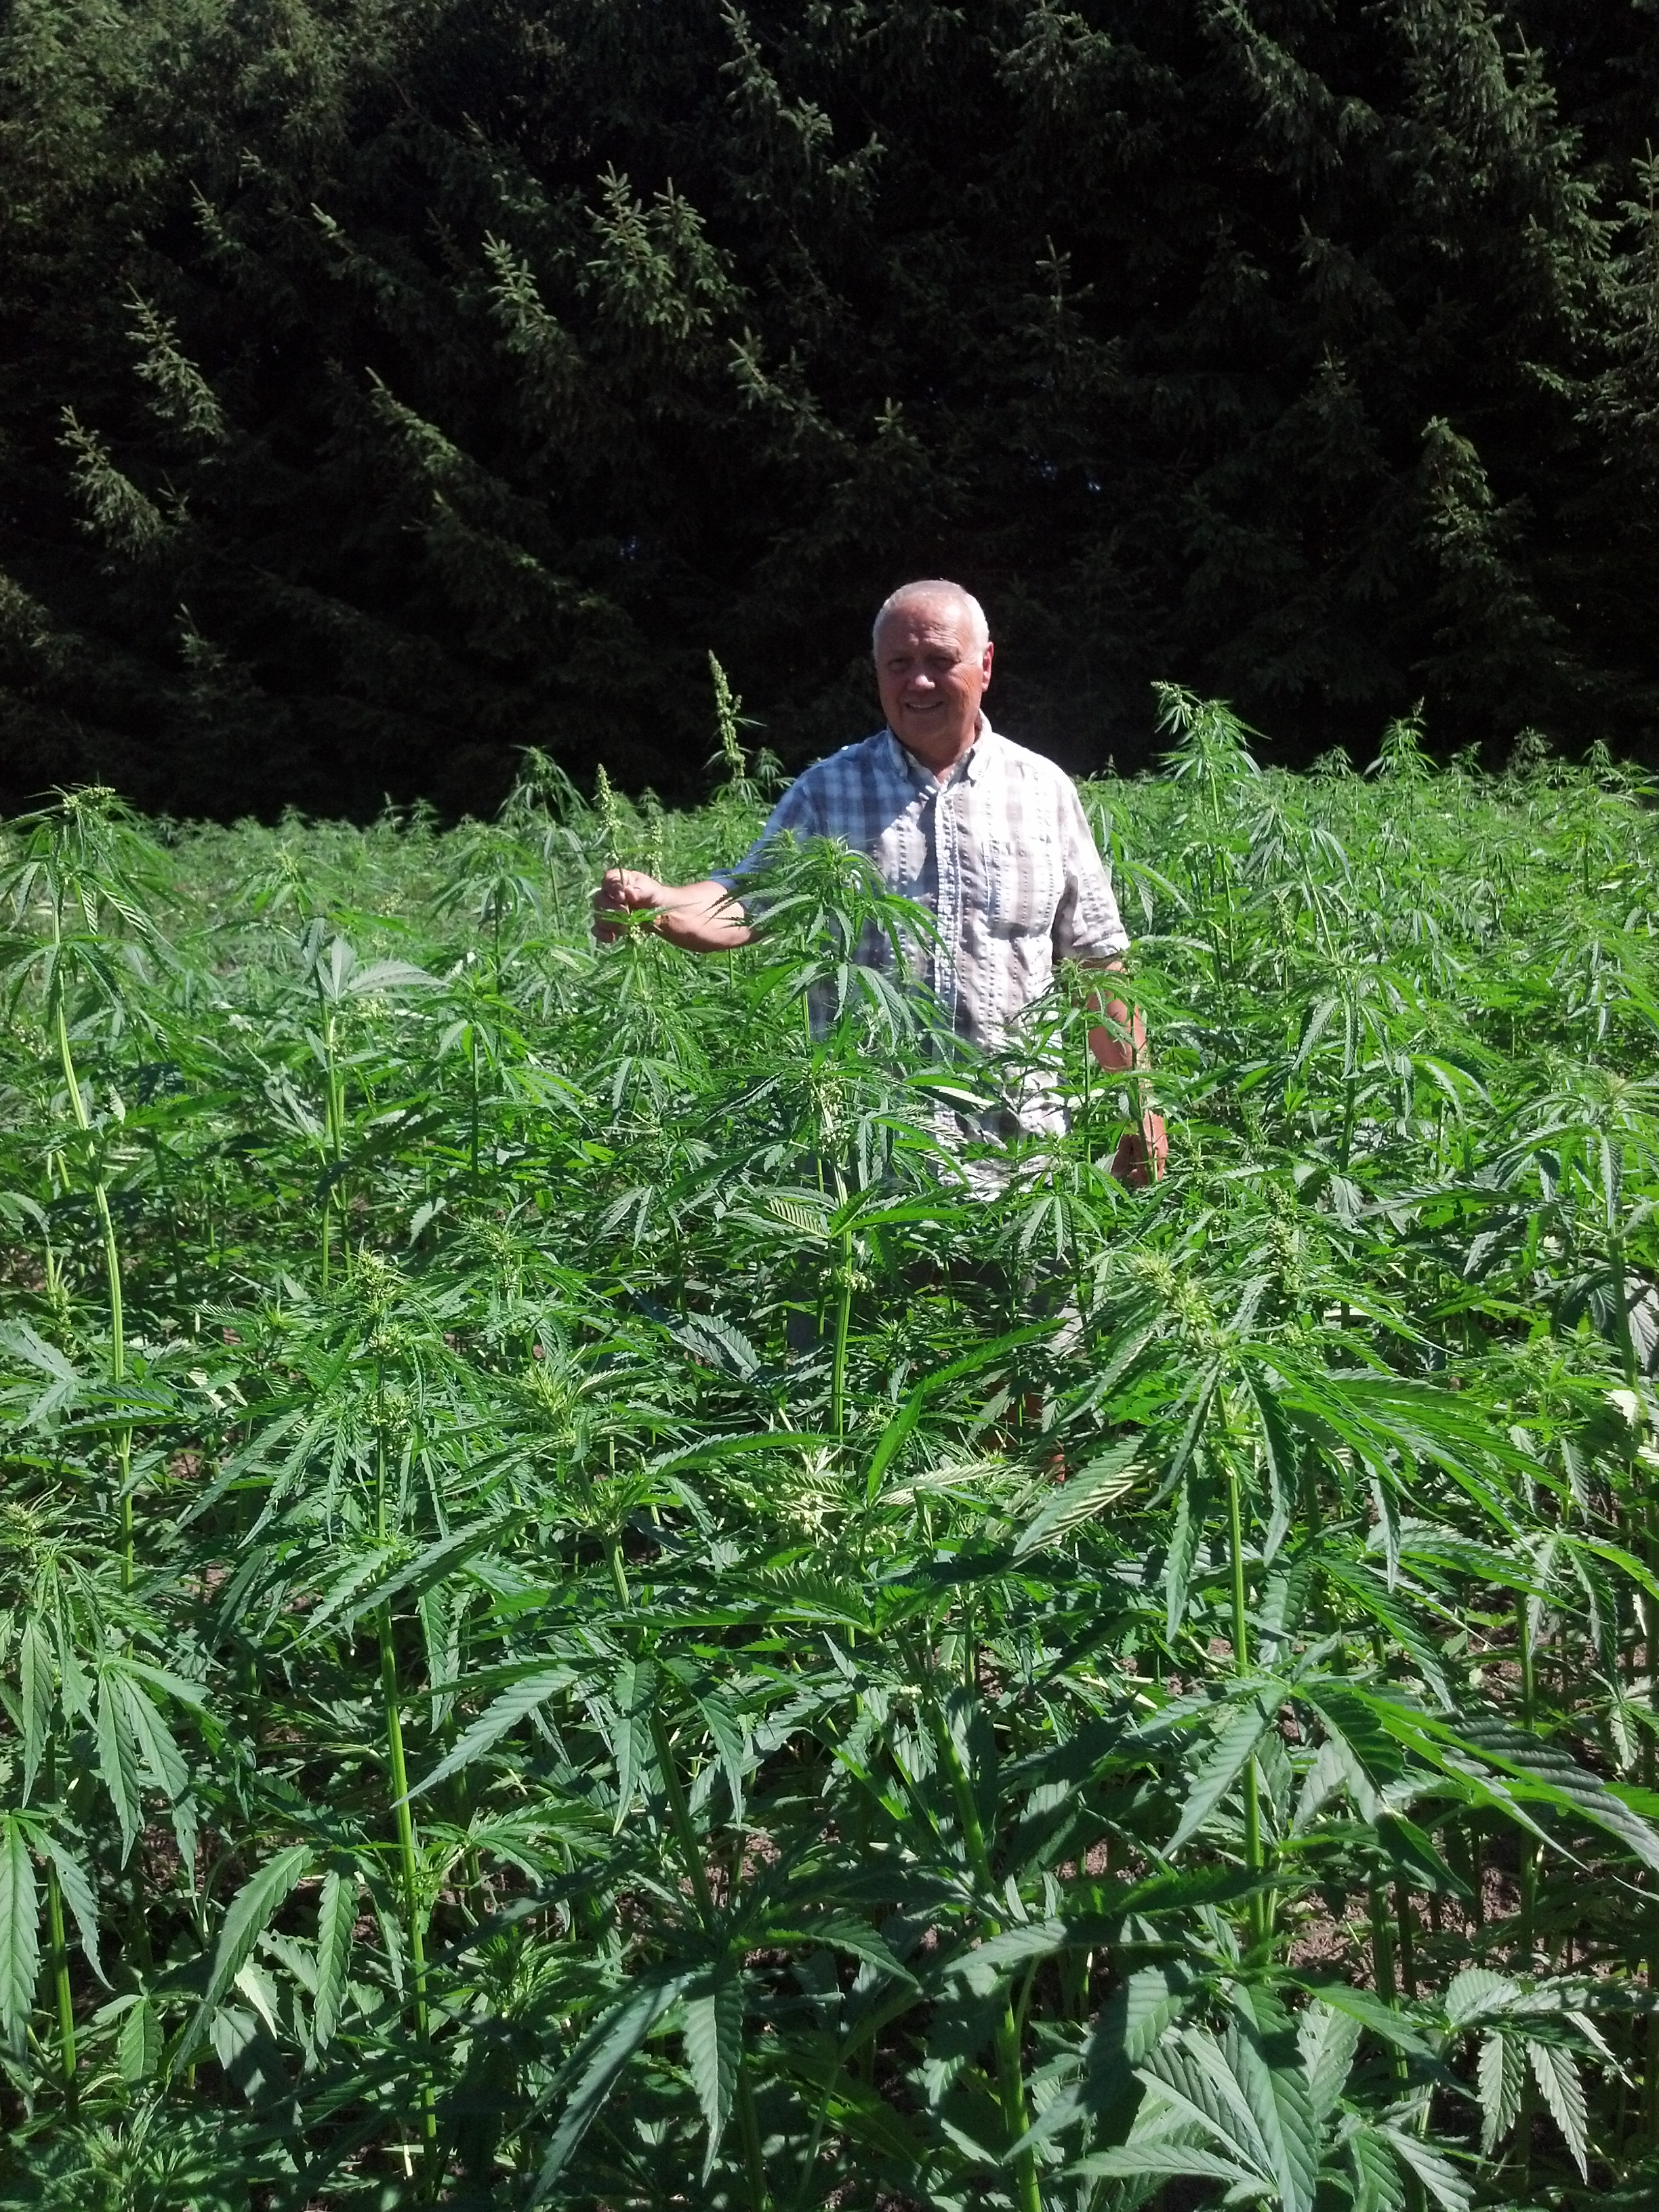 """I constantly keep my finger on the pulse of the industry to find better ways to identify individuals high in CBD and low in THC to keep seed lines compliant with regulatory requirements."" - John Baker, CBD Baker - Stirling, Ontario"